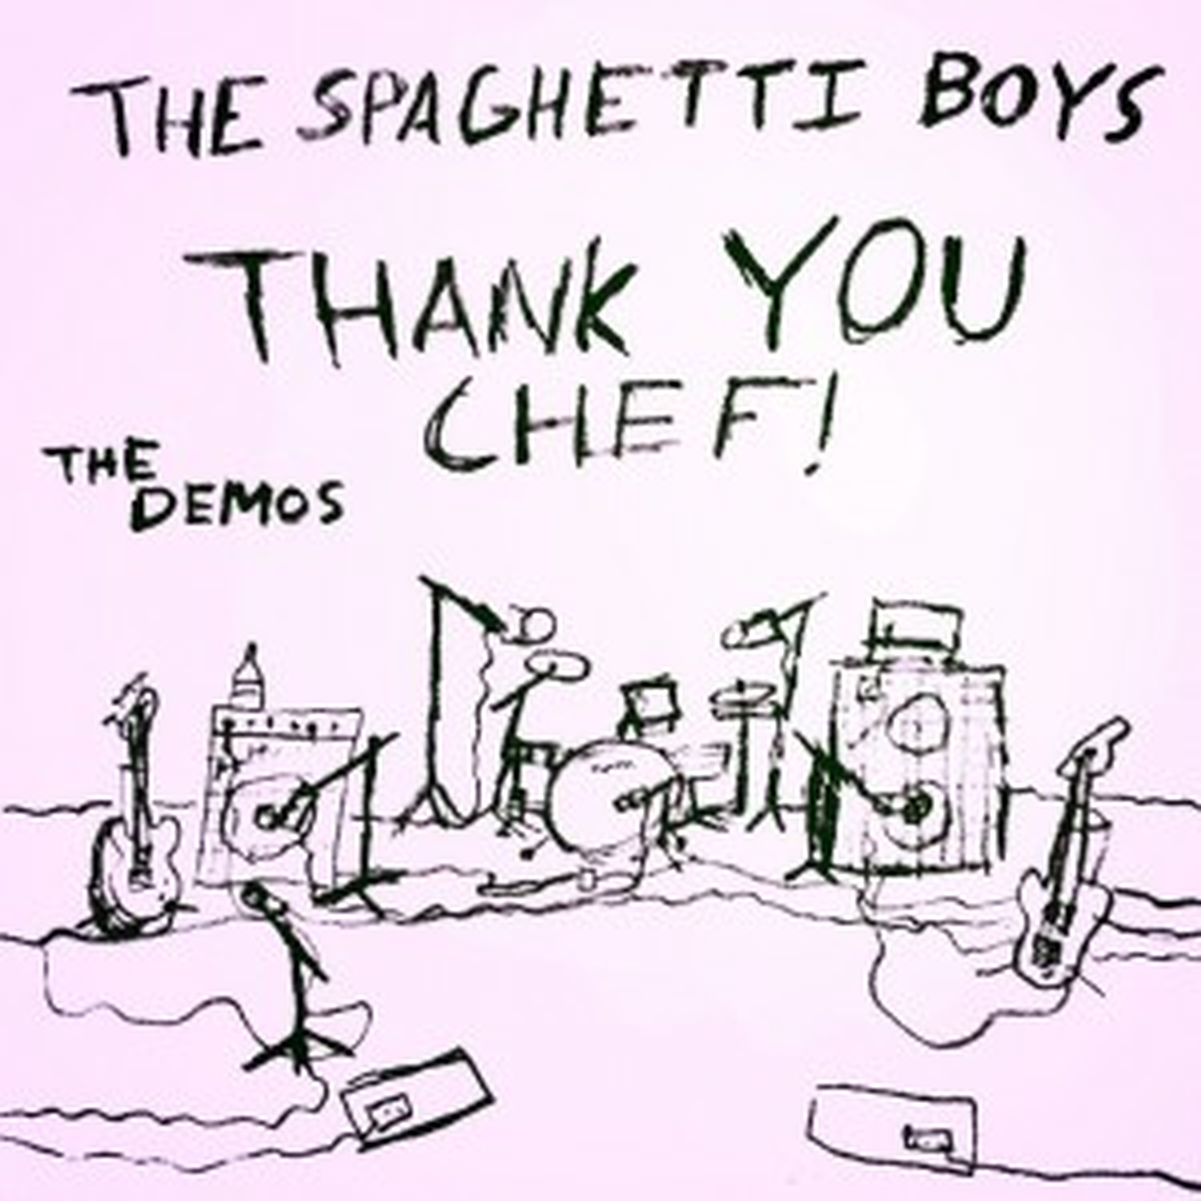 The Spaghetti Boys